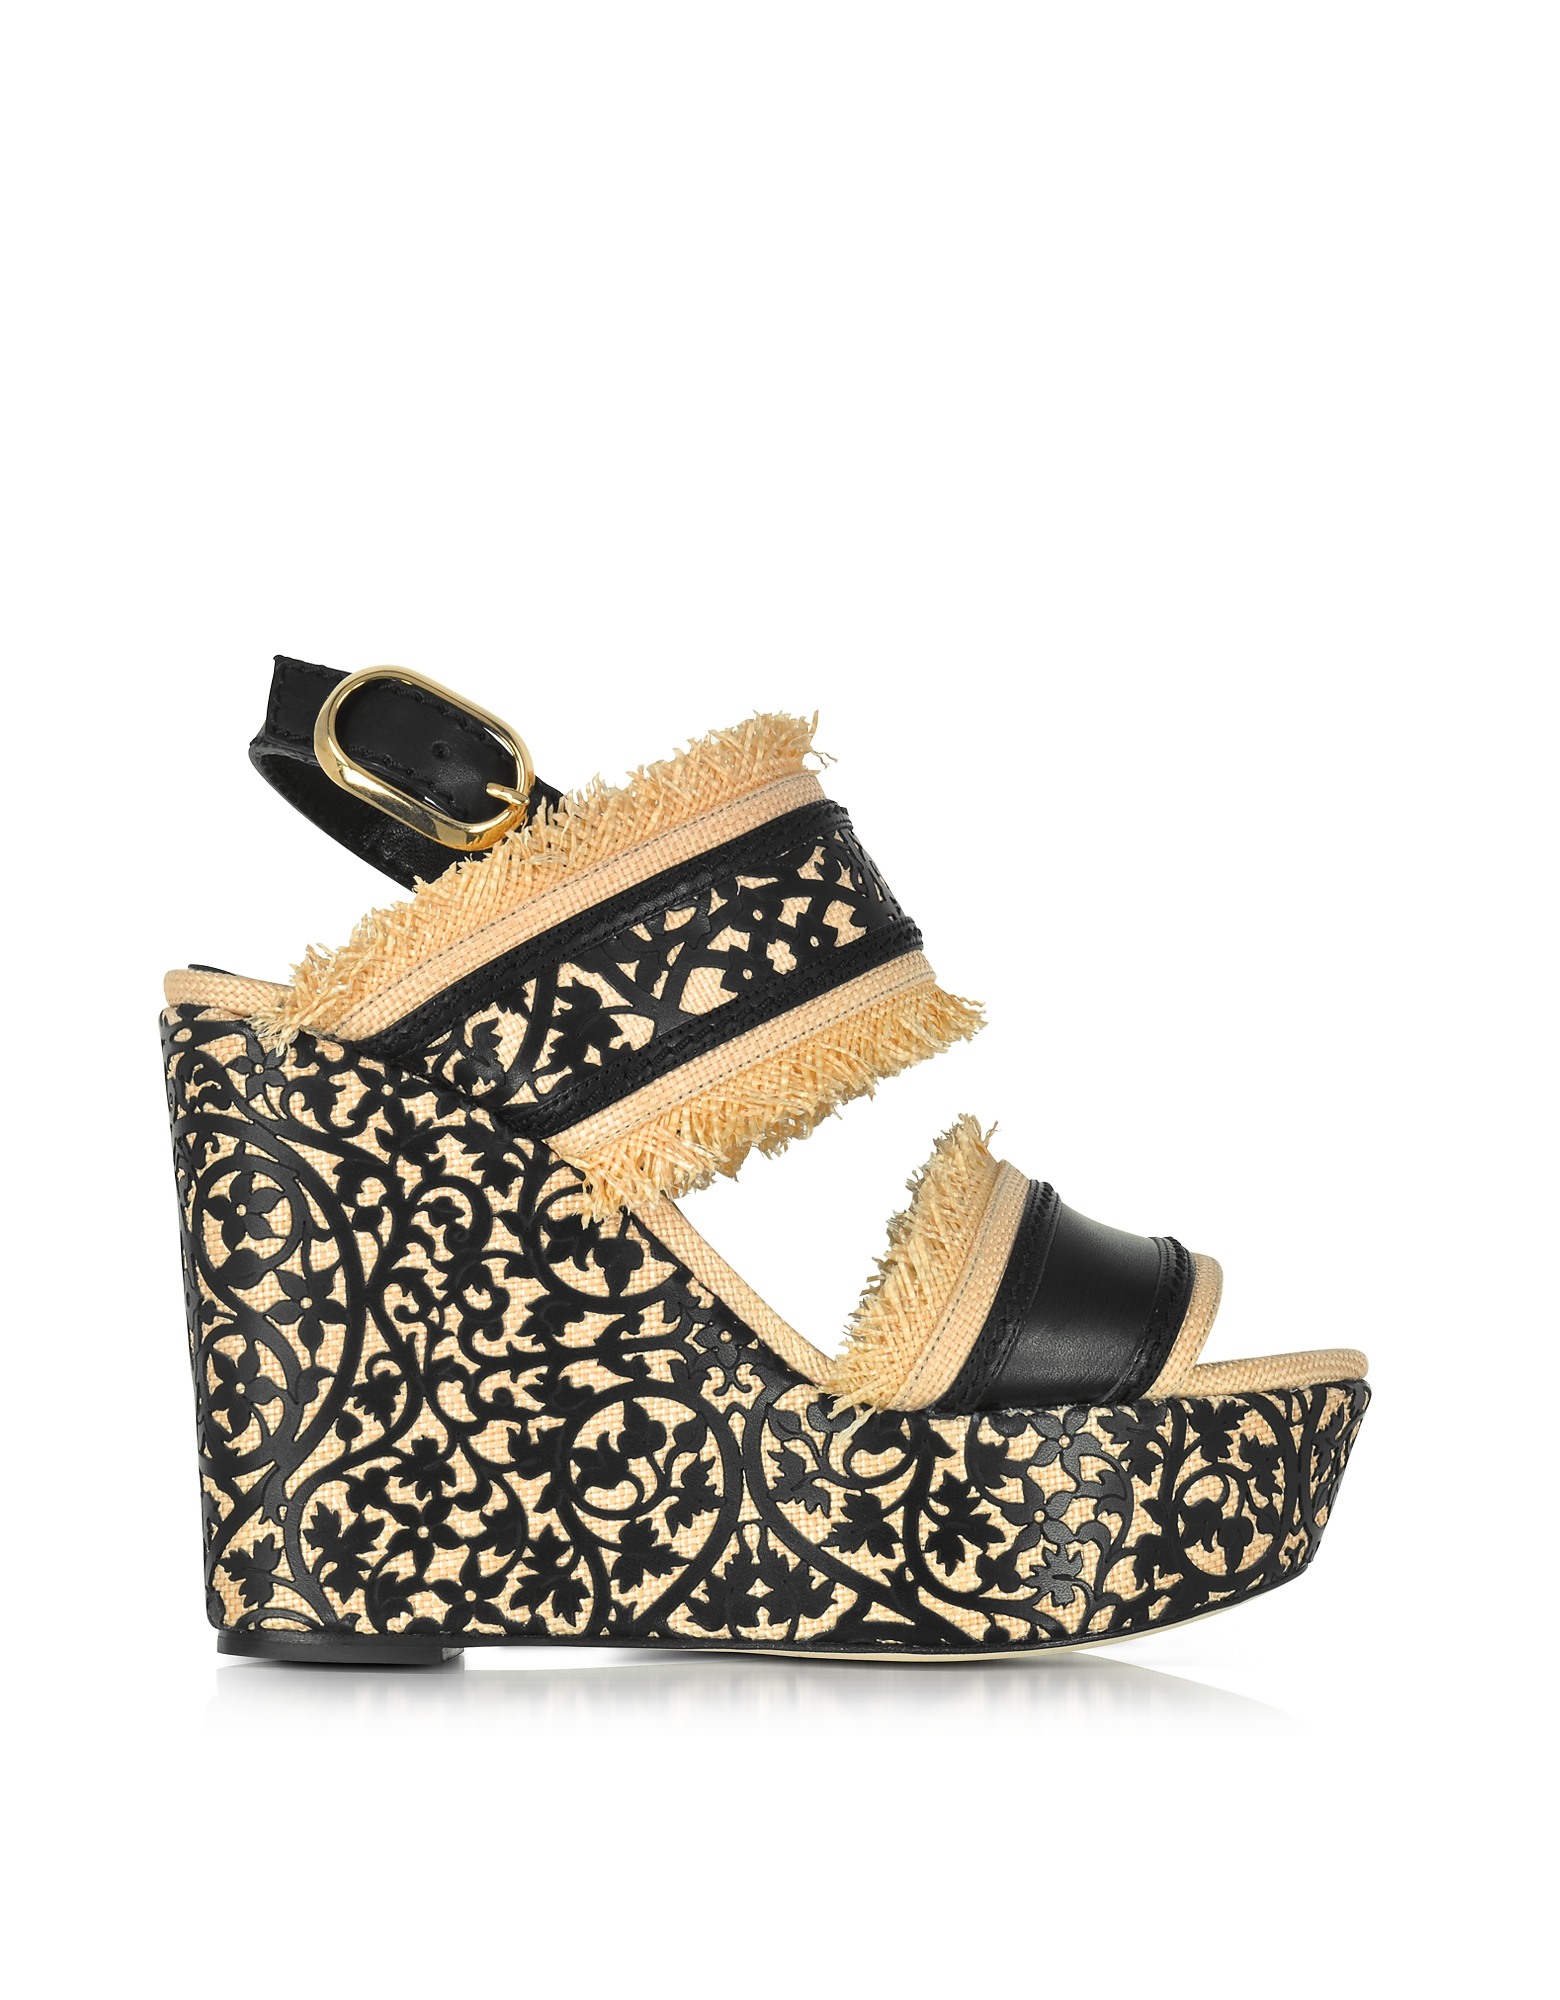 Oscar de la Renta Shoes, Talitha Black & Beige Lasercut Leather and Raffia Wedge Sandals